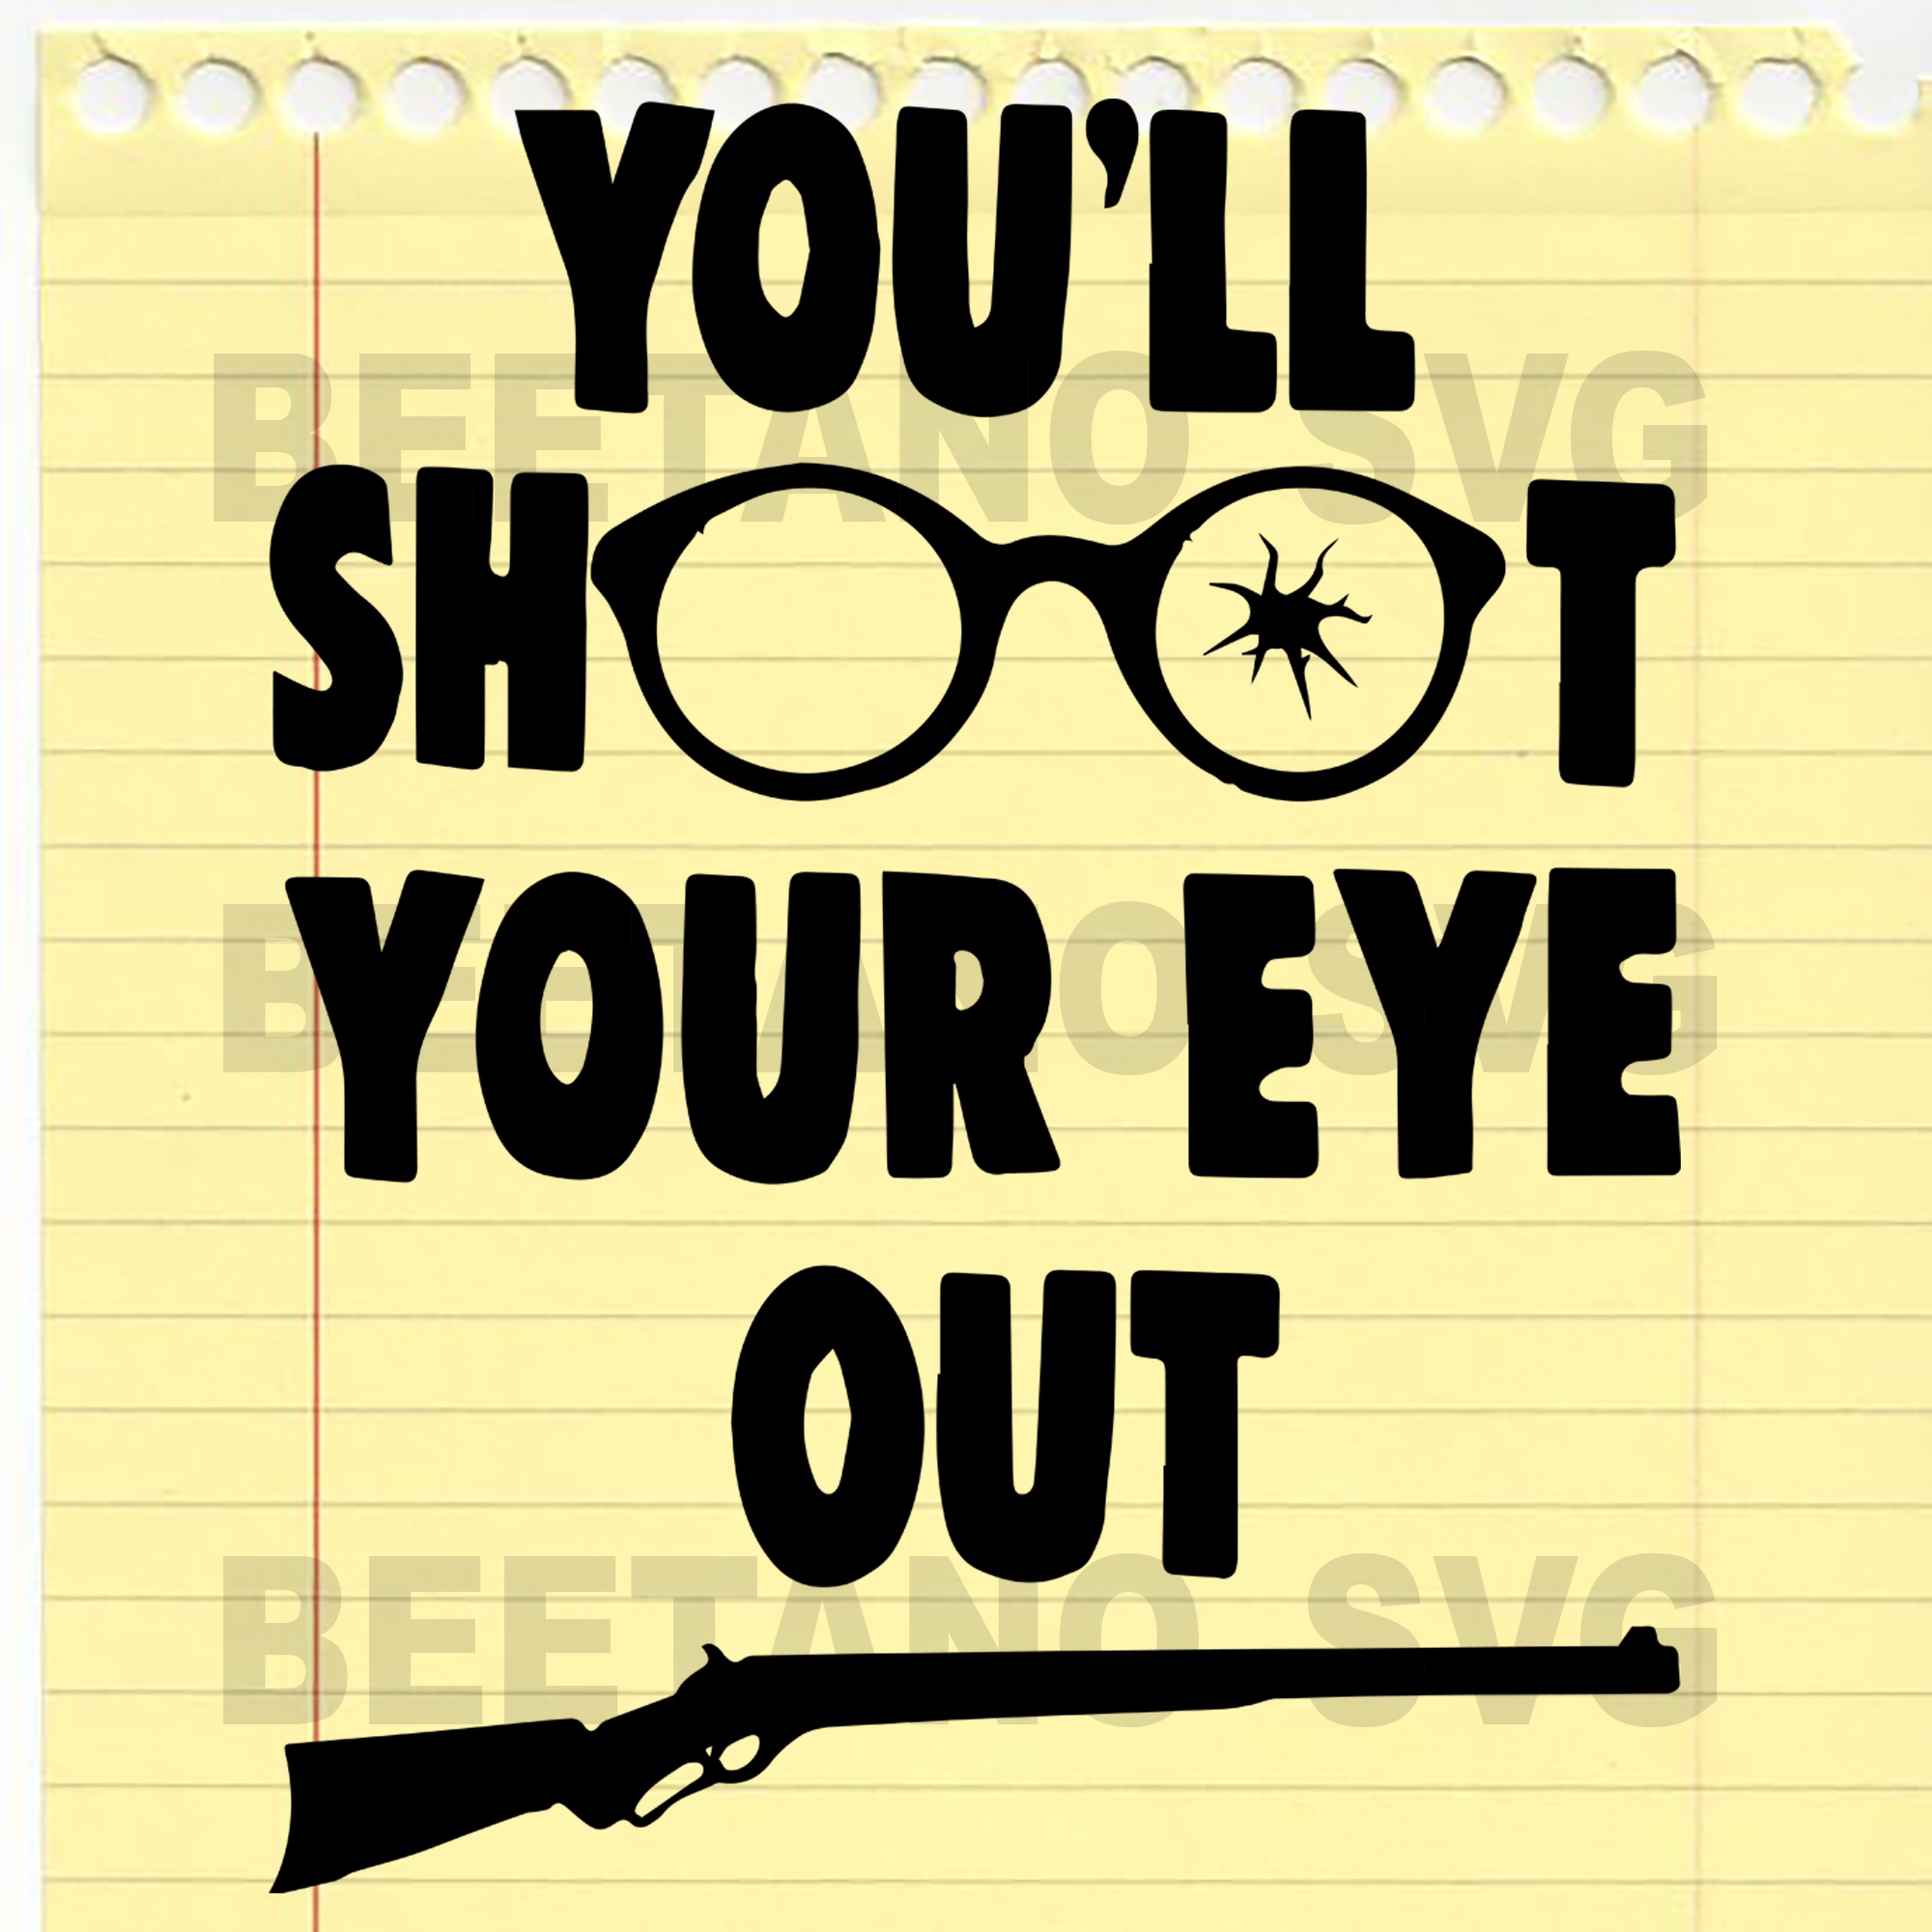 You'll Shoot Your Eye Out Guns Svg, You'll Shoot Your Eye Out Guns Svg Files, You'll Shoot Your Eye Out Guns Vector, You'll Shoot Your Eye Out Guns Cutting Files For Cricut, SVG, DXF, EPS, PNG Instant Download